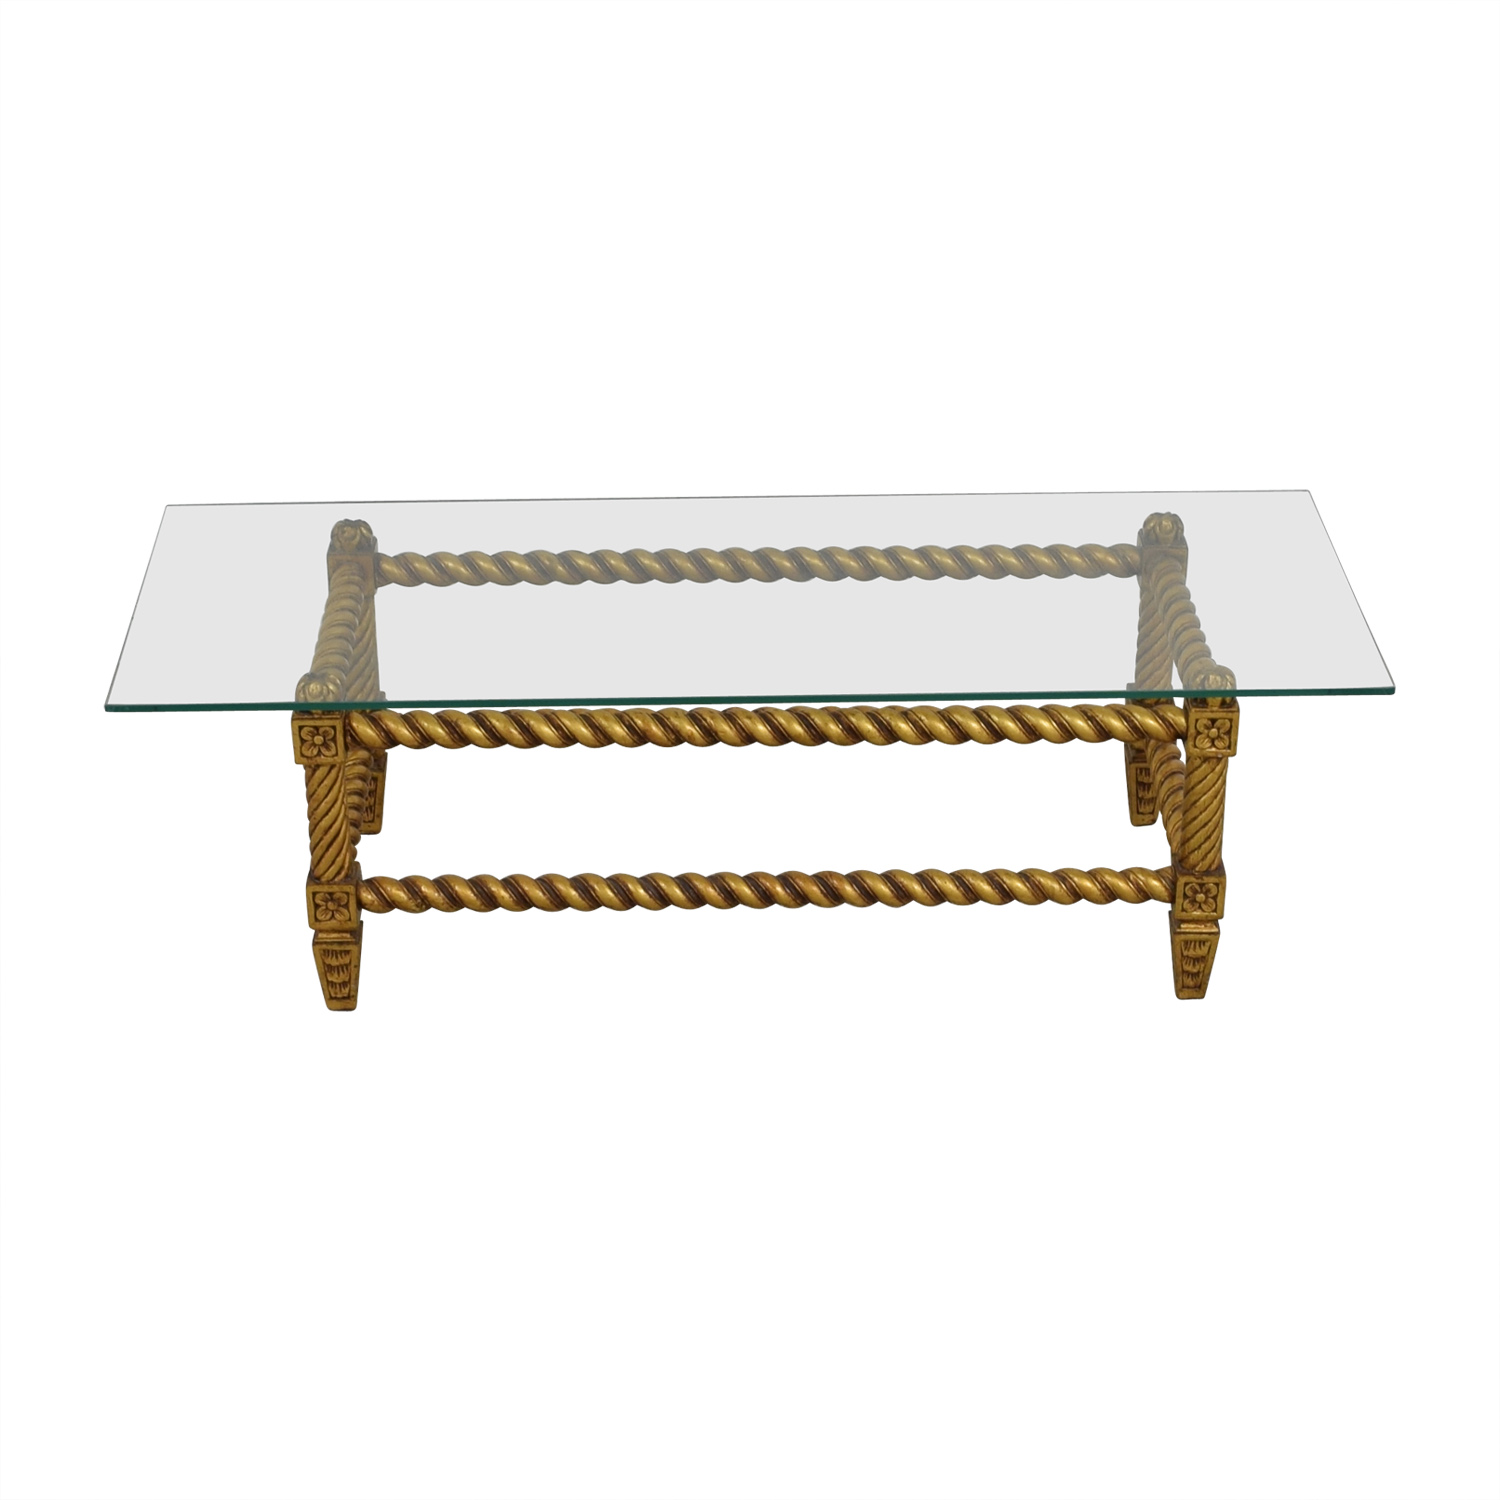 Antique Gold And Glass Coffee Table: Antique Glass And Gold Framed Coffee Table / Tables